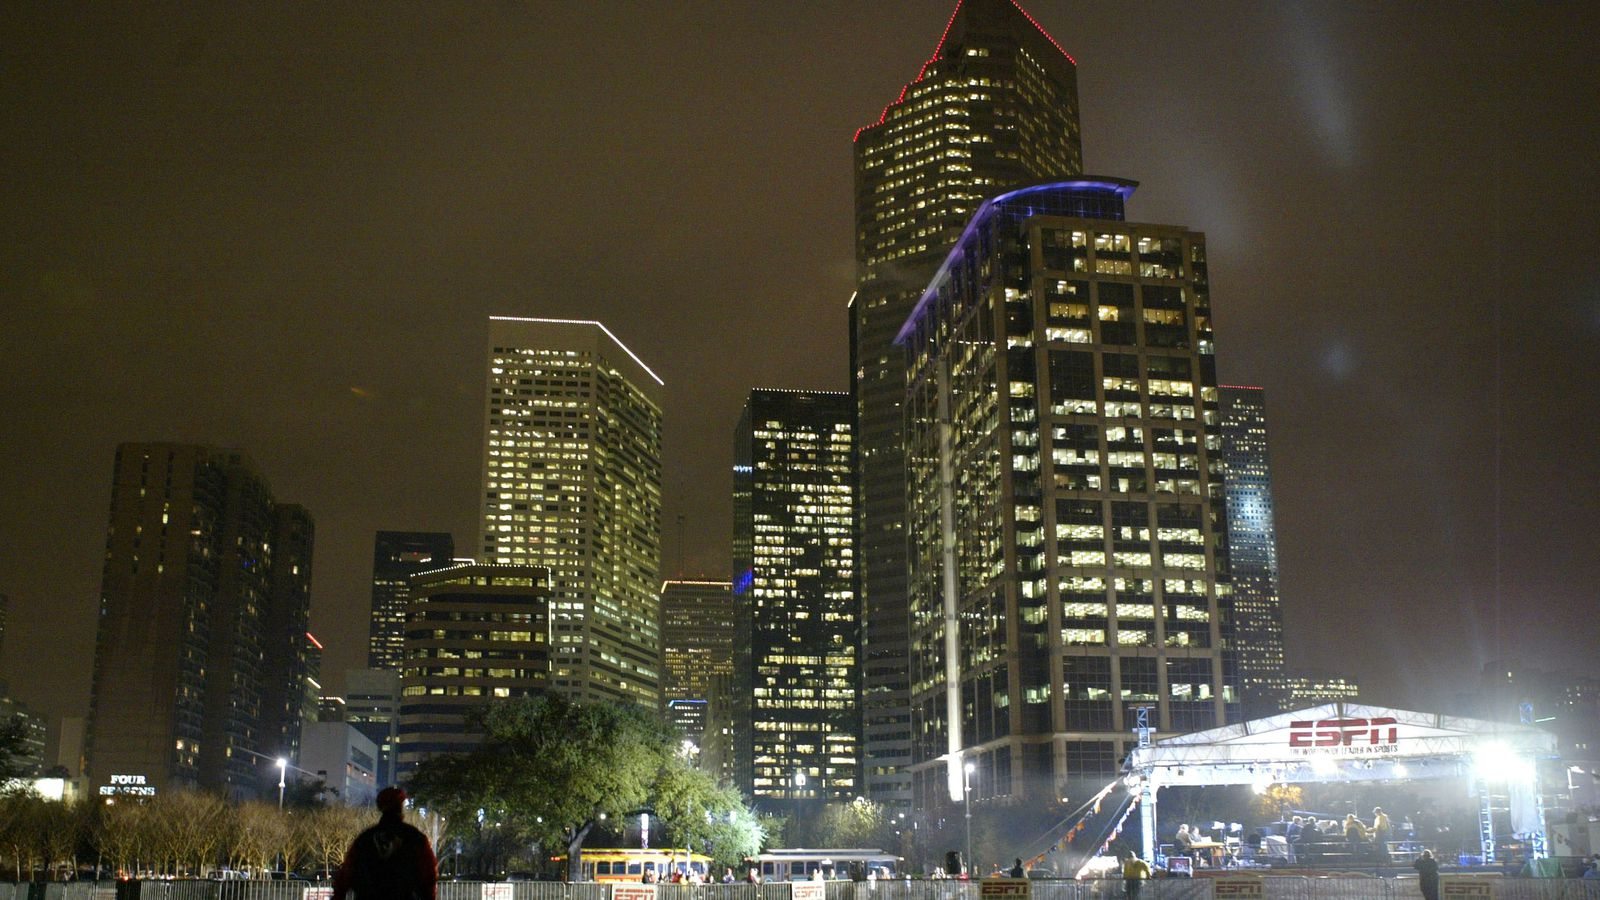 HOUSTON VISITOR'S GUIDE